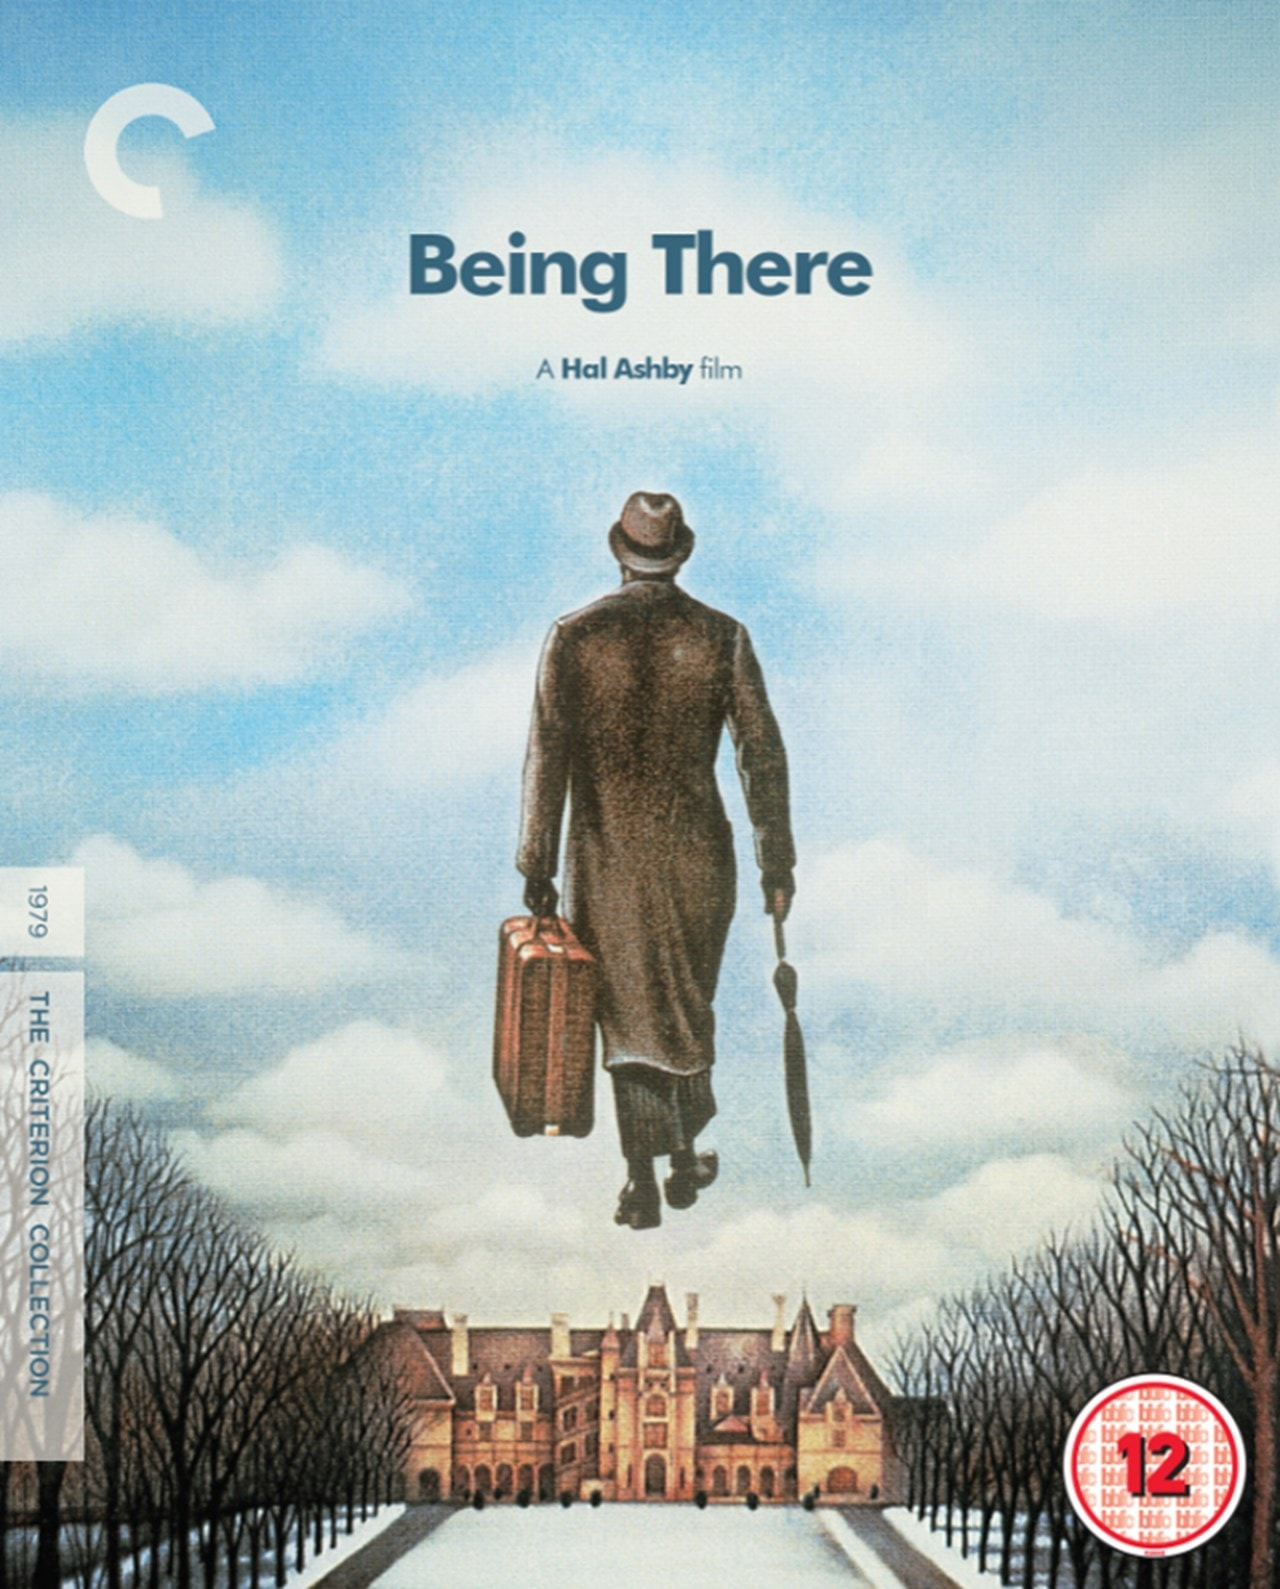 Being There - The Criterion Collection - 1